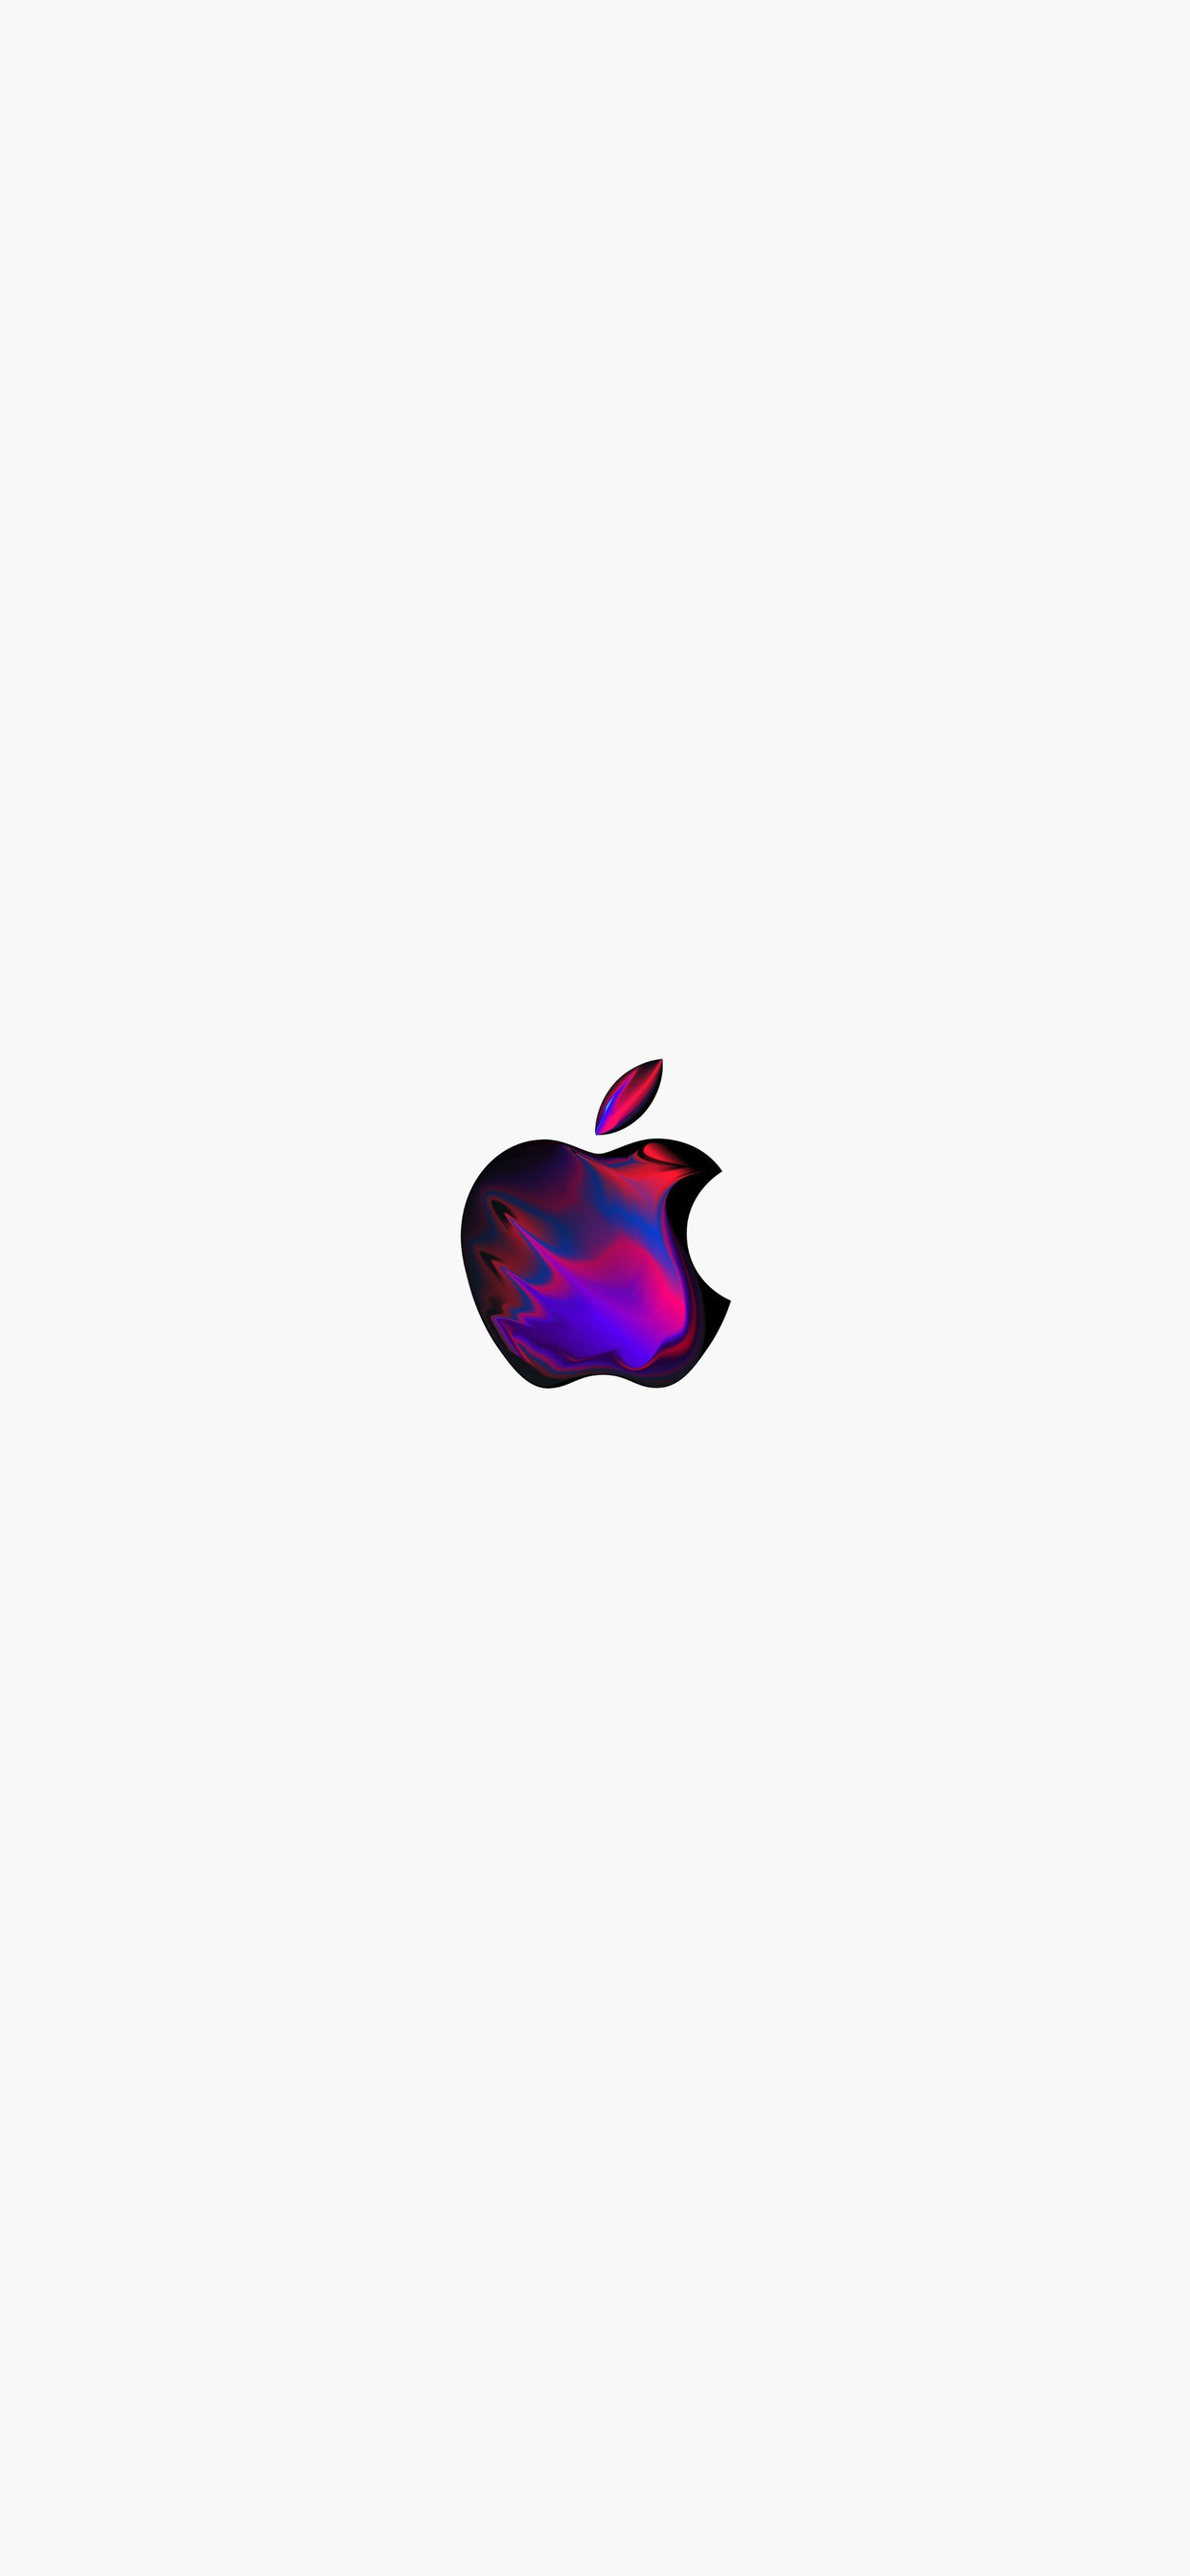 There S More In The Making 33 Apple Logo Wallpapers